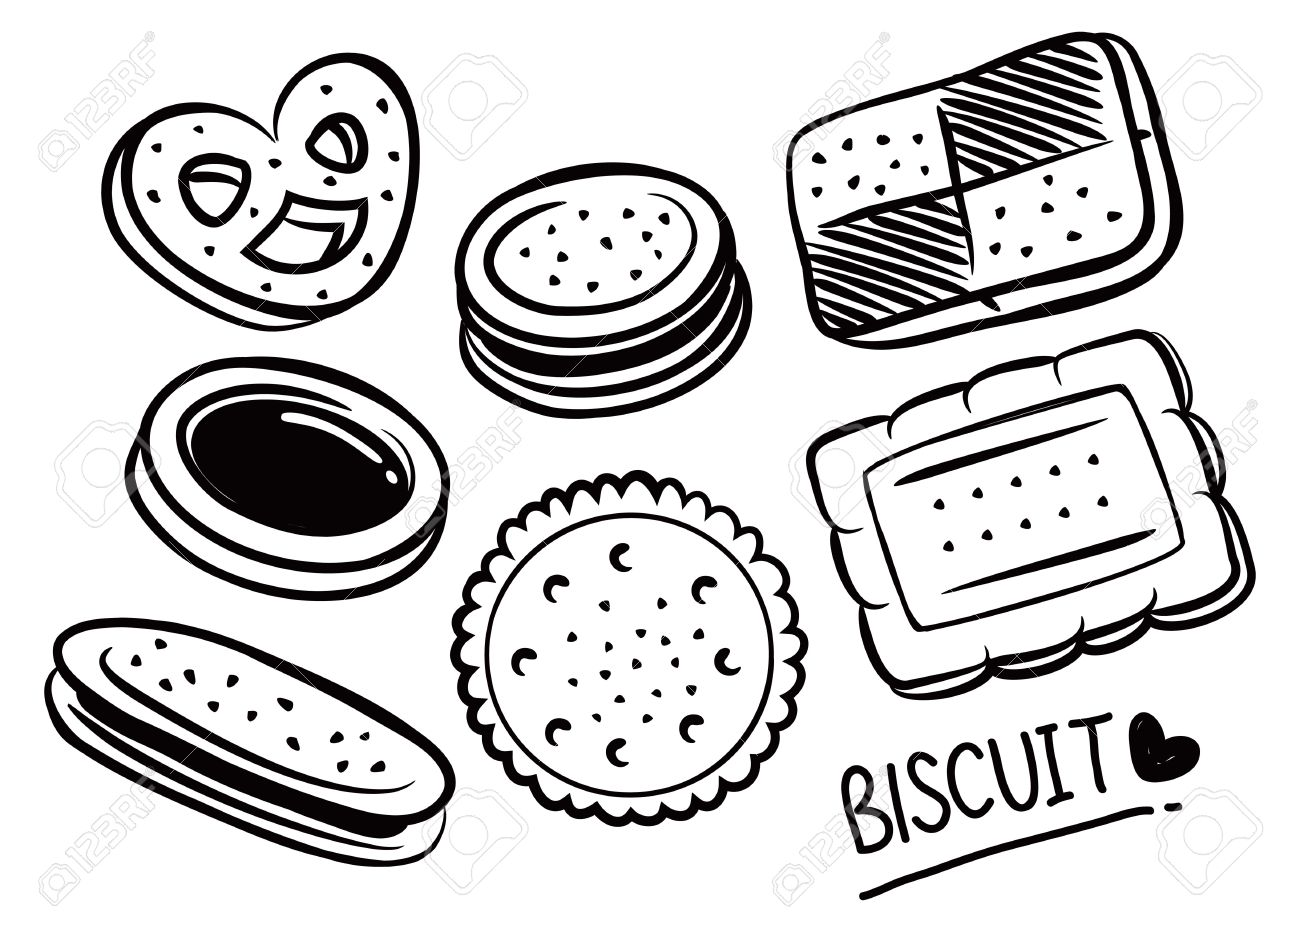 Biscuits clipart black and white image library stock Biscuit clipart black and white 1 » Clipart Station image library stock